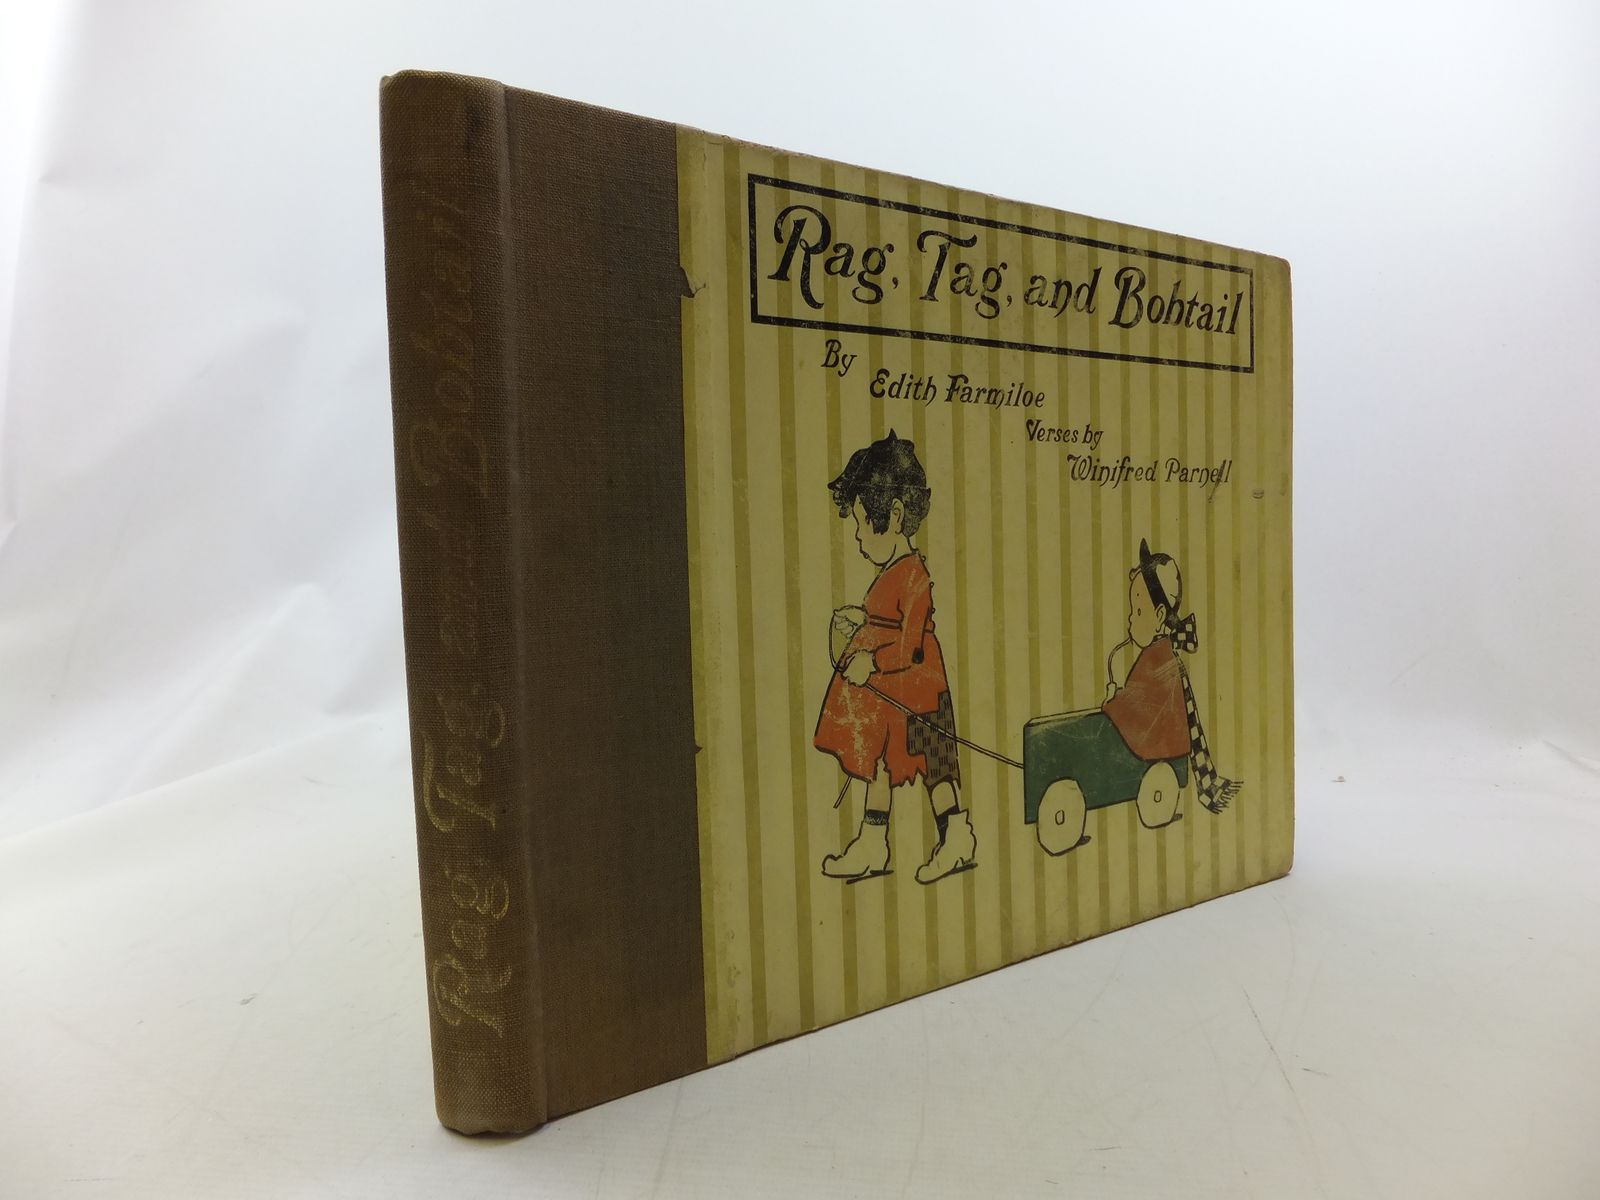 Photo of RAG, TAG, AND BOBTAIL written by Parnell, Winifred illustrated by Farmiloe, Edith published by Grant Richards (STOCK CODE: 2114422)  for sale by Stella & Rose's Books